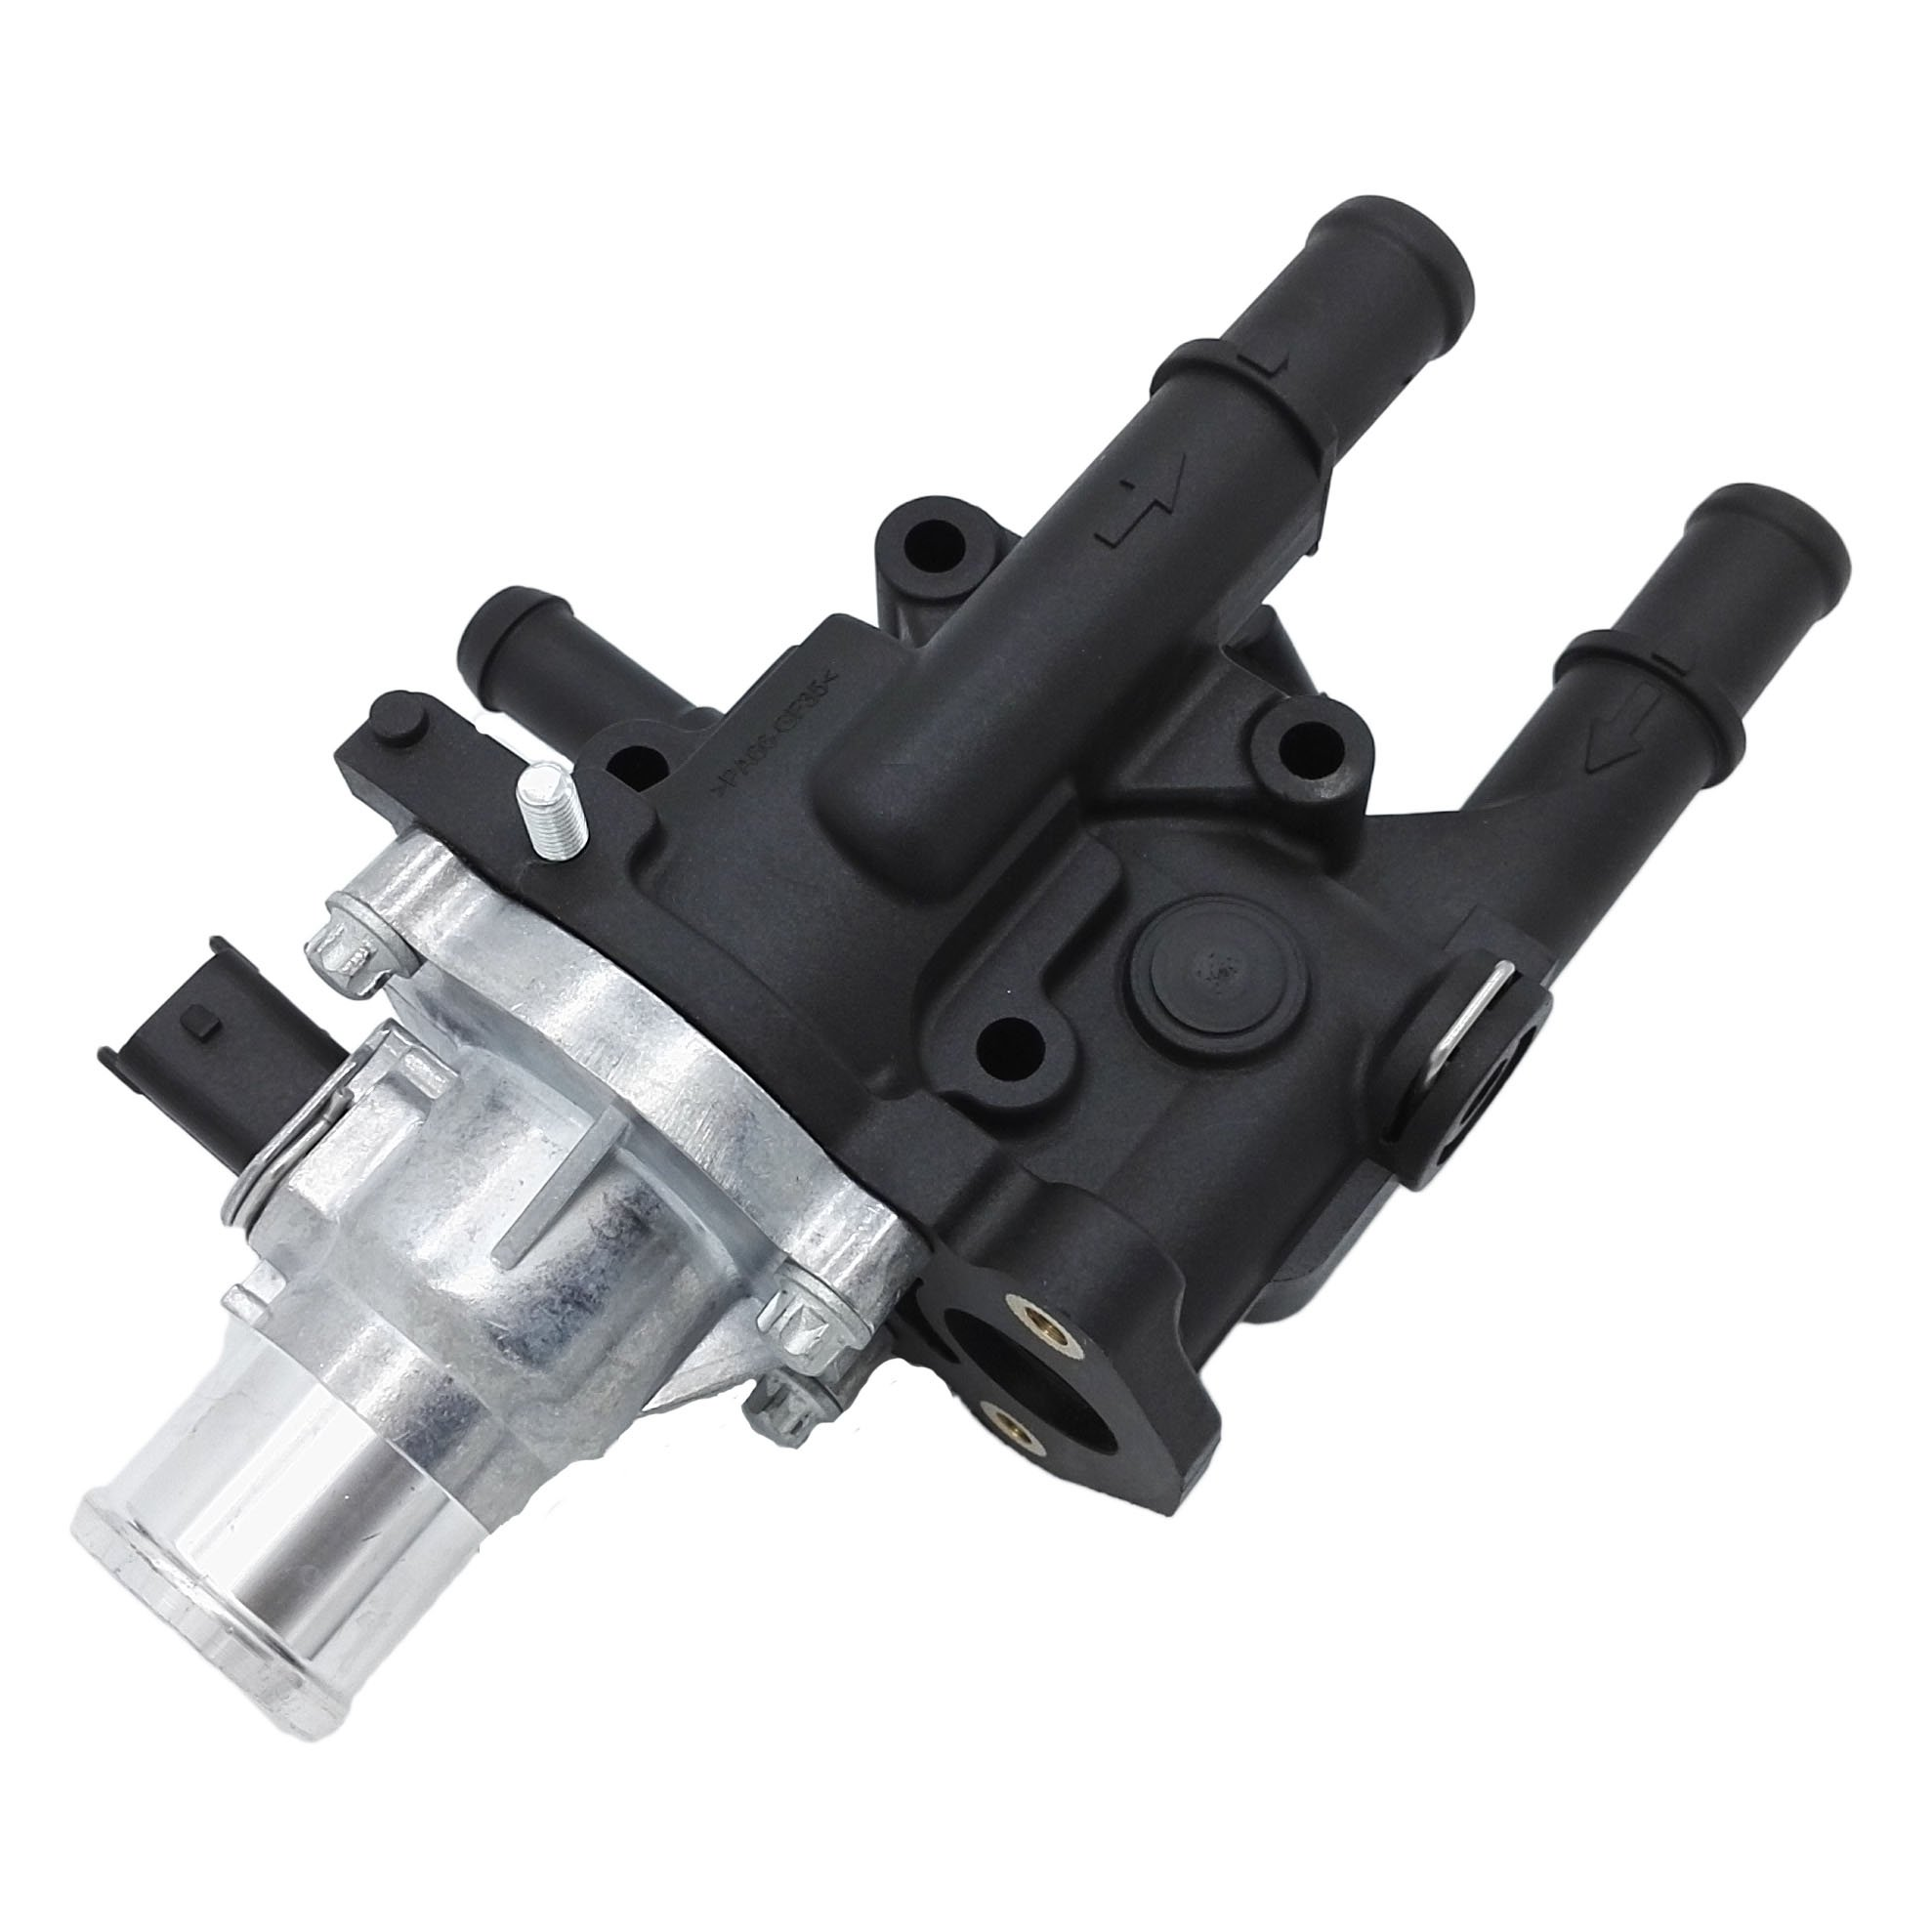 Chevy Aveo Engine Top Deals Lowest Price Pontiac Coolant Thermostat Housing For 09 11 Aveo5 G3 Wave